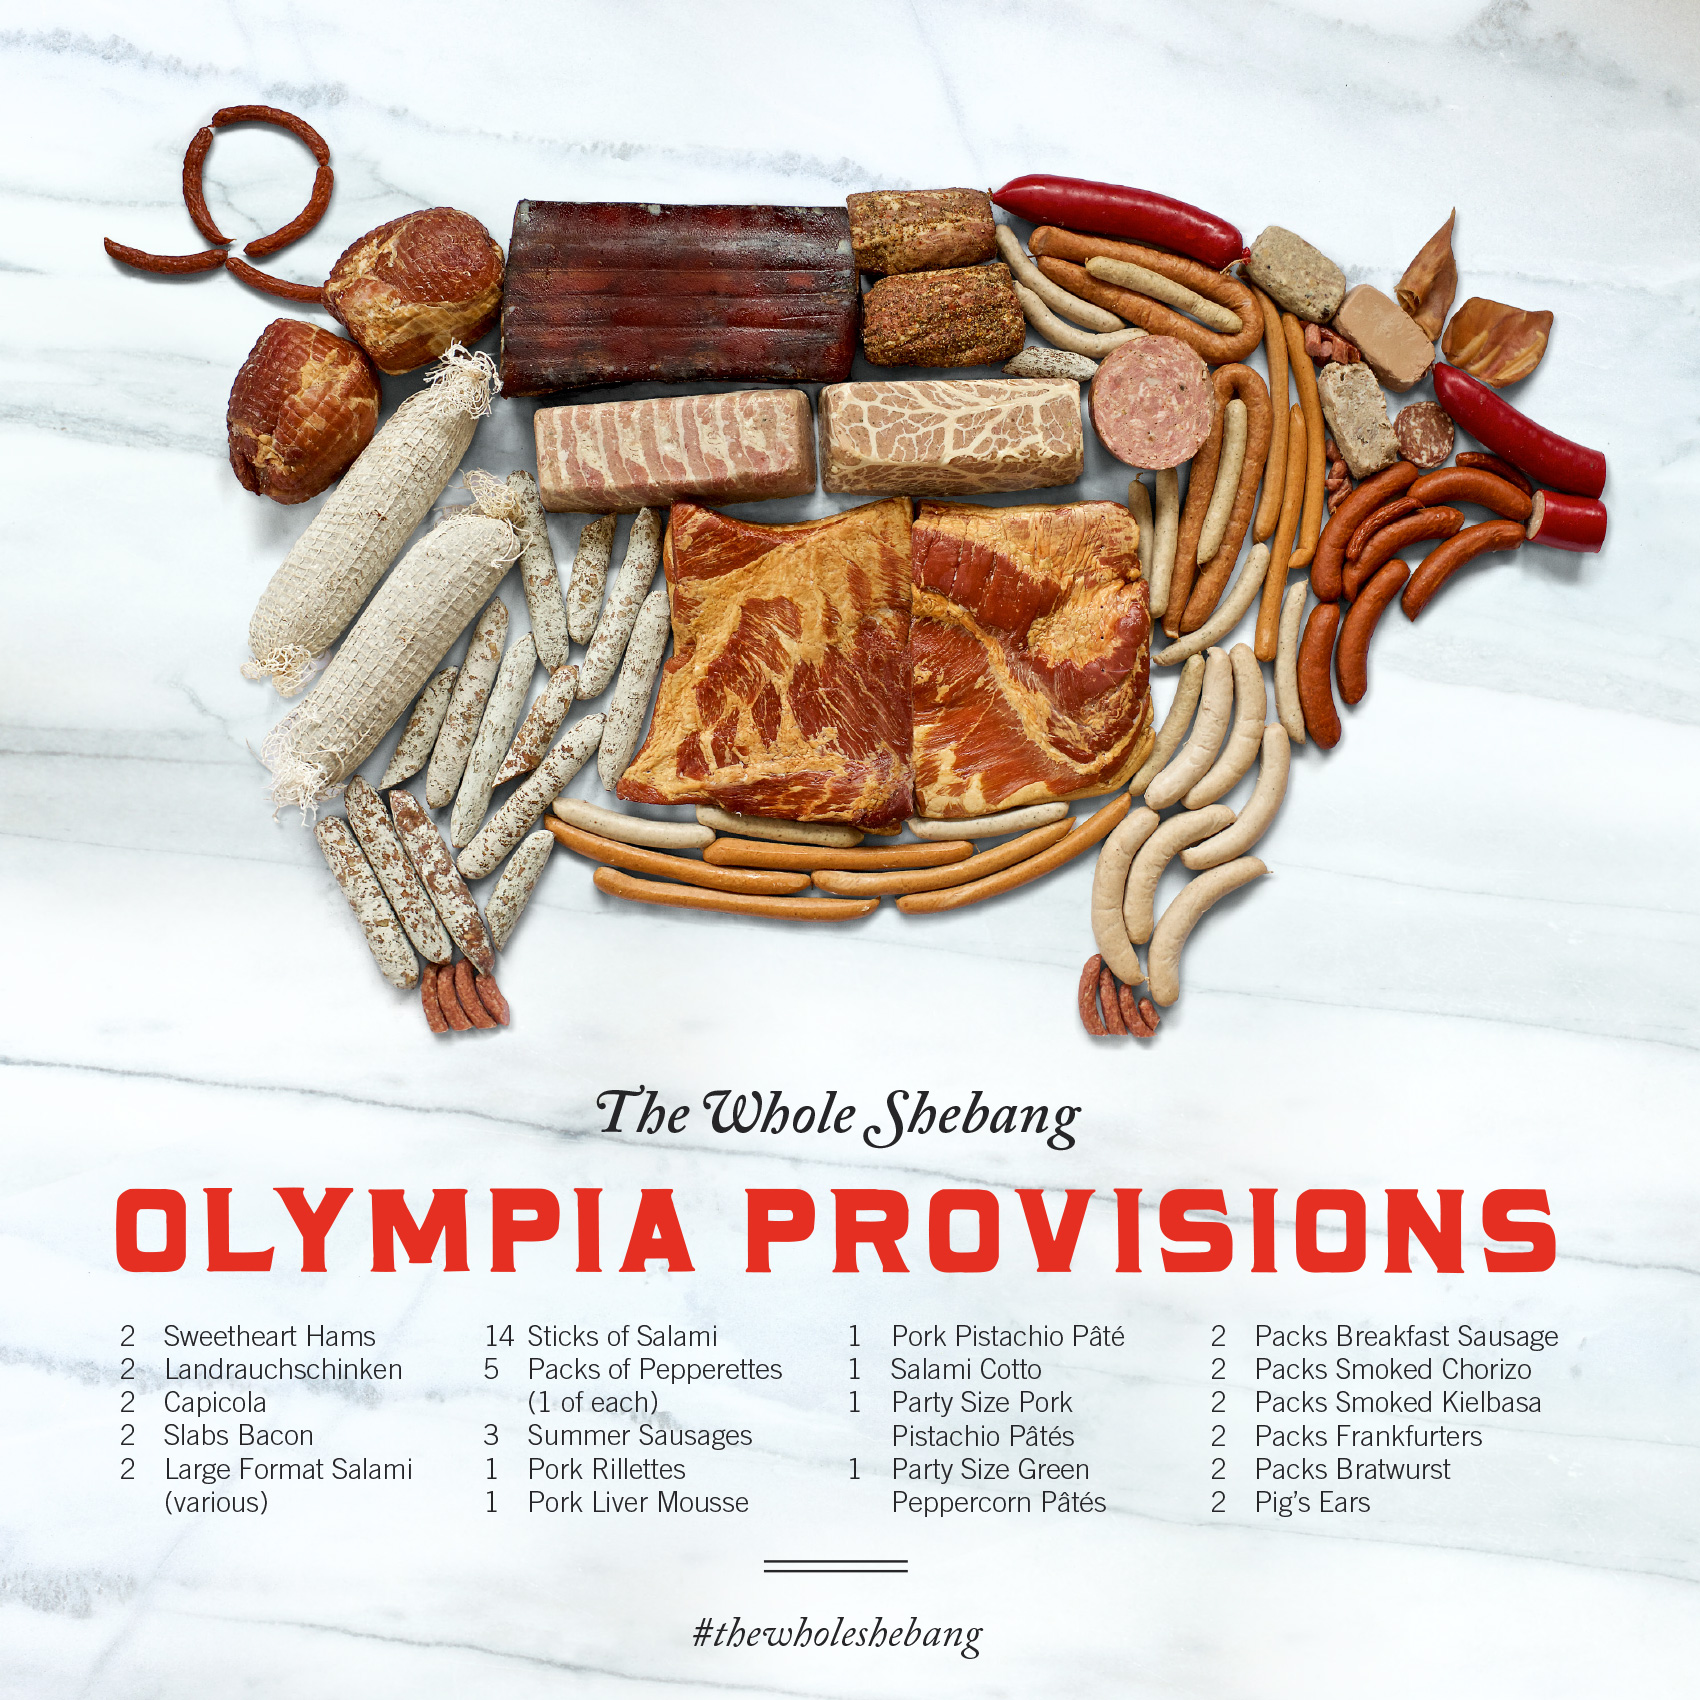 olympia provisions charcuterie selection in the shape of a pig - the whole shebang!